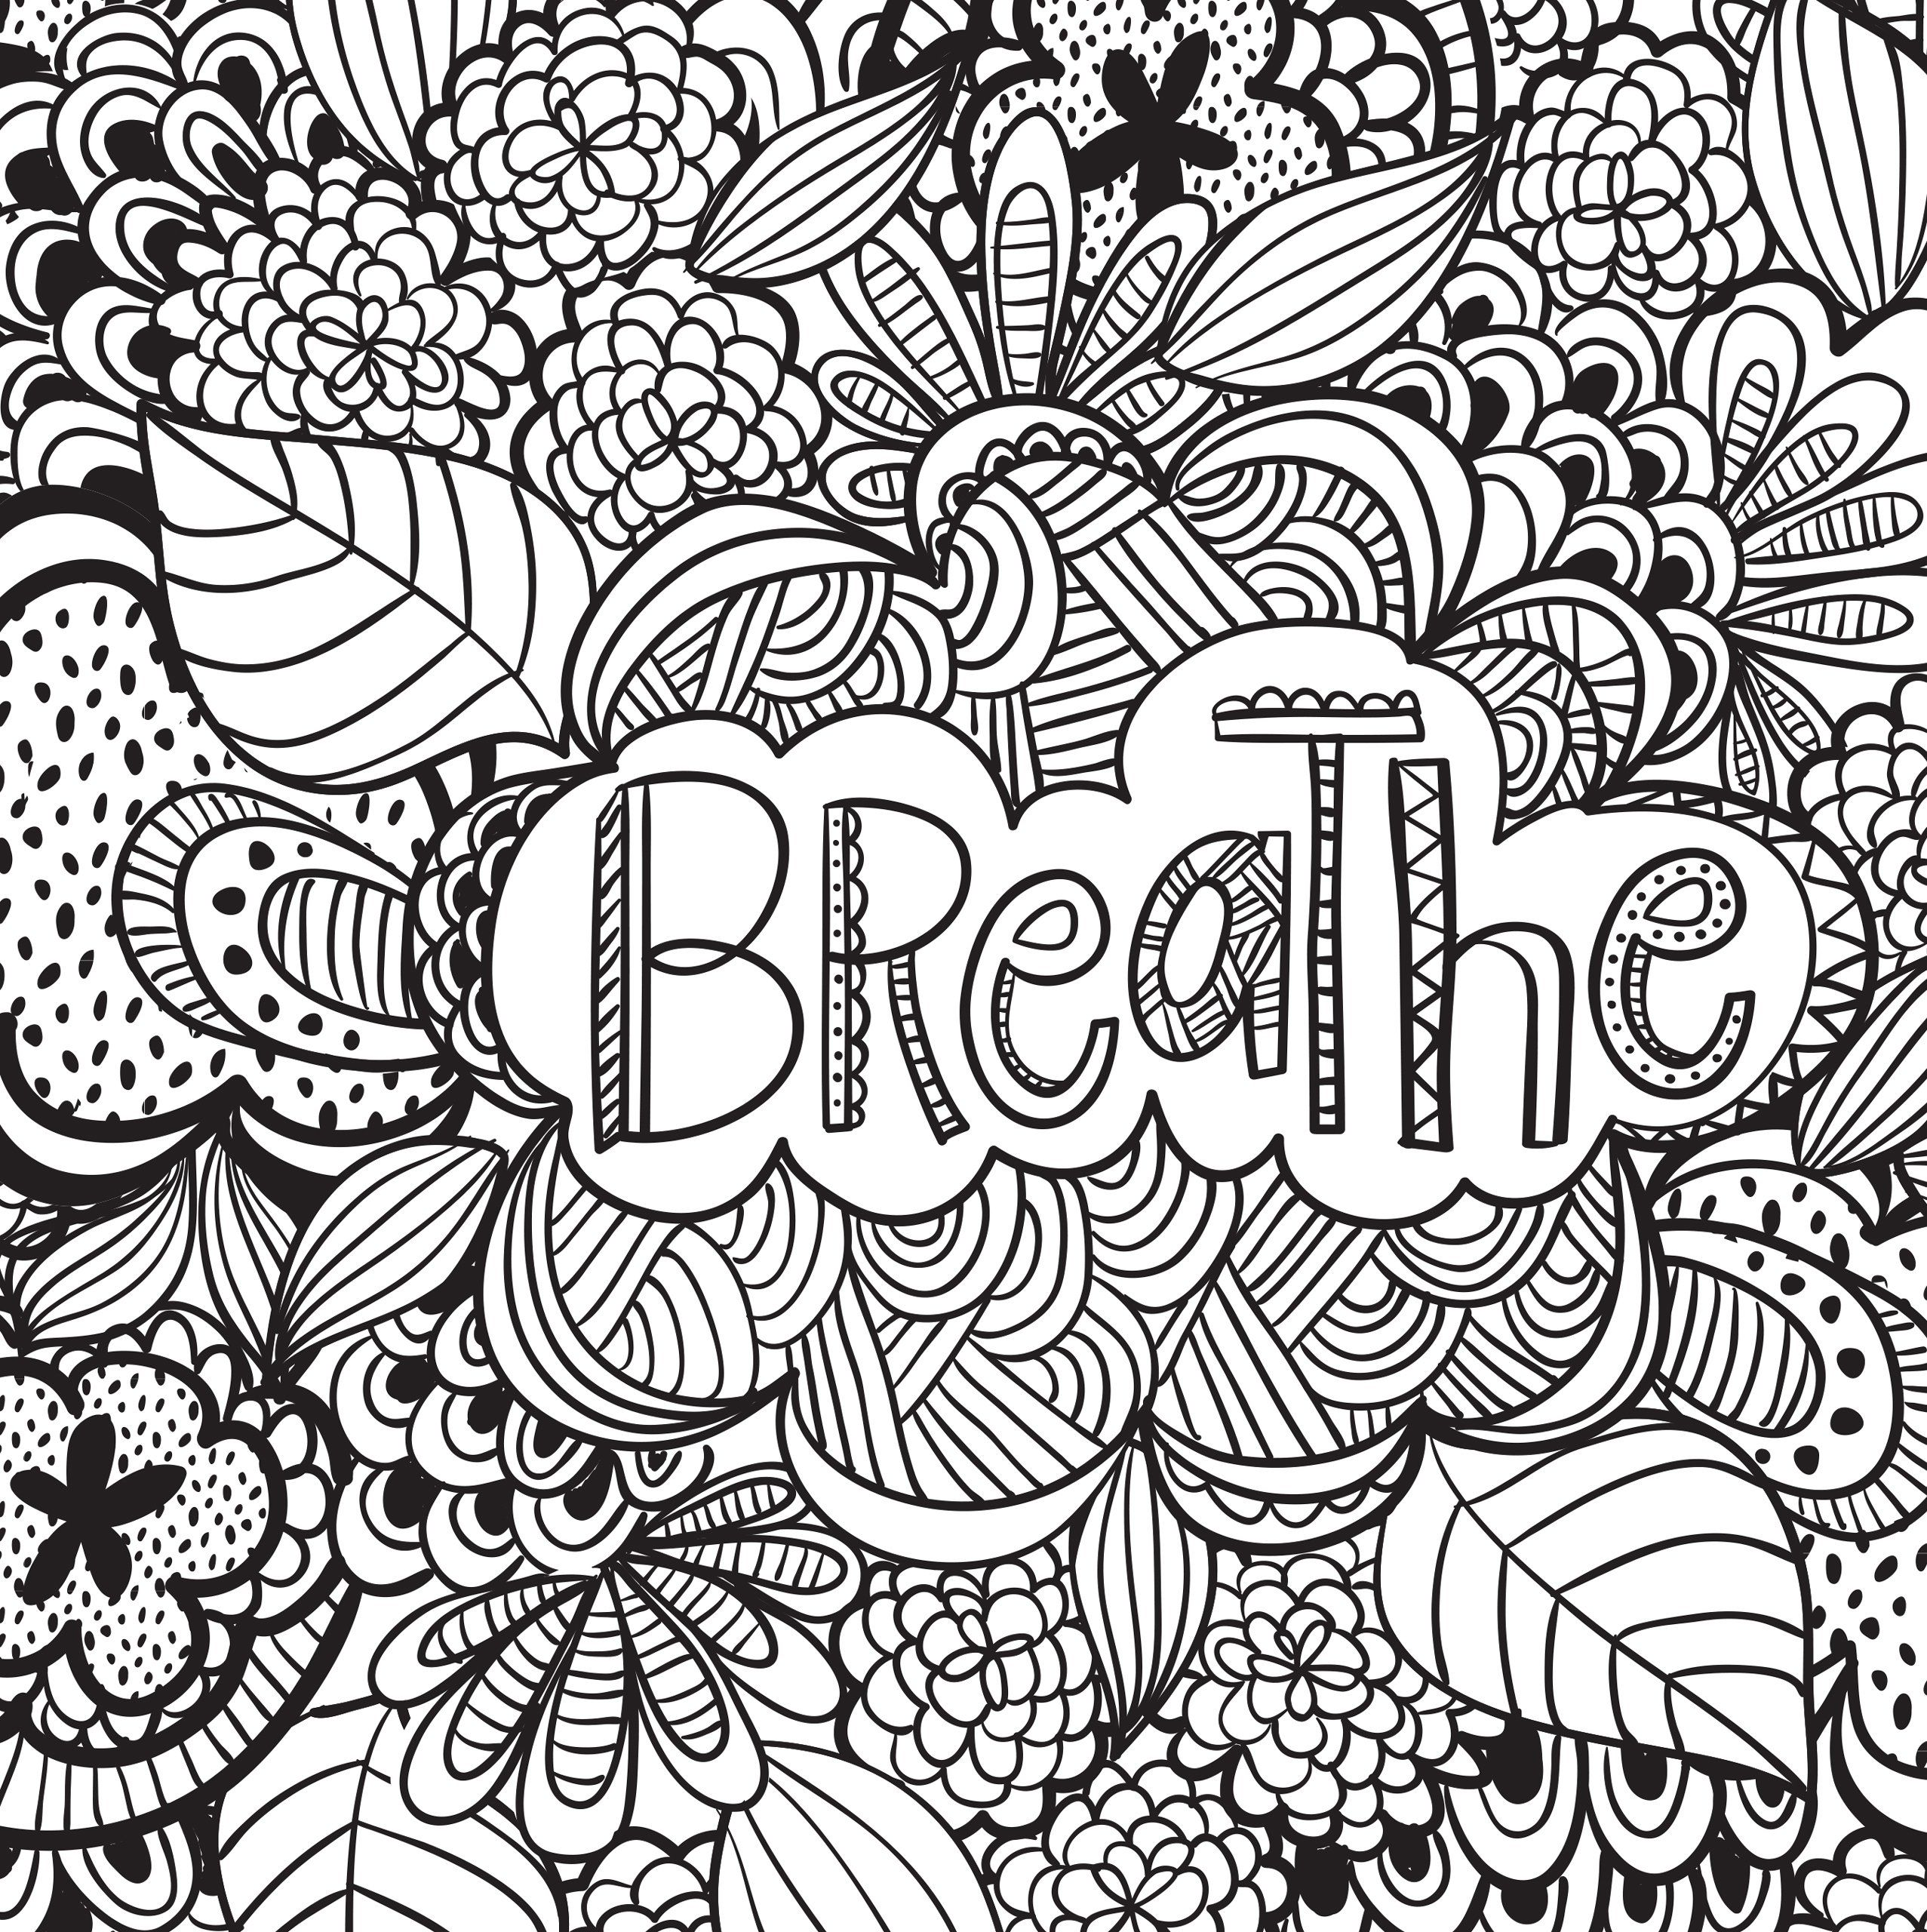 Coloring Book For Stress Relief : Joyful Inspiration Adult Coloring Book (31 stress relieving designs) (Artists Coloring Books ...